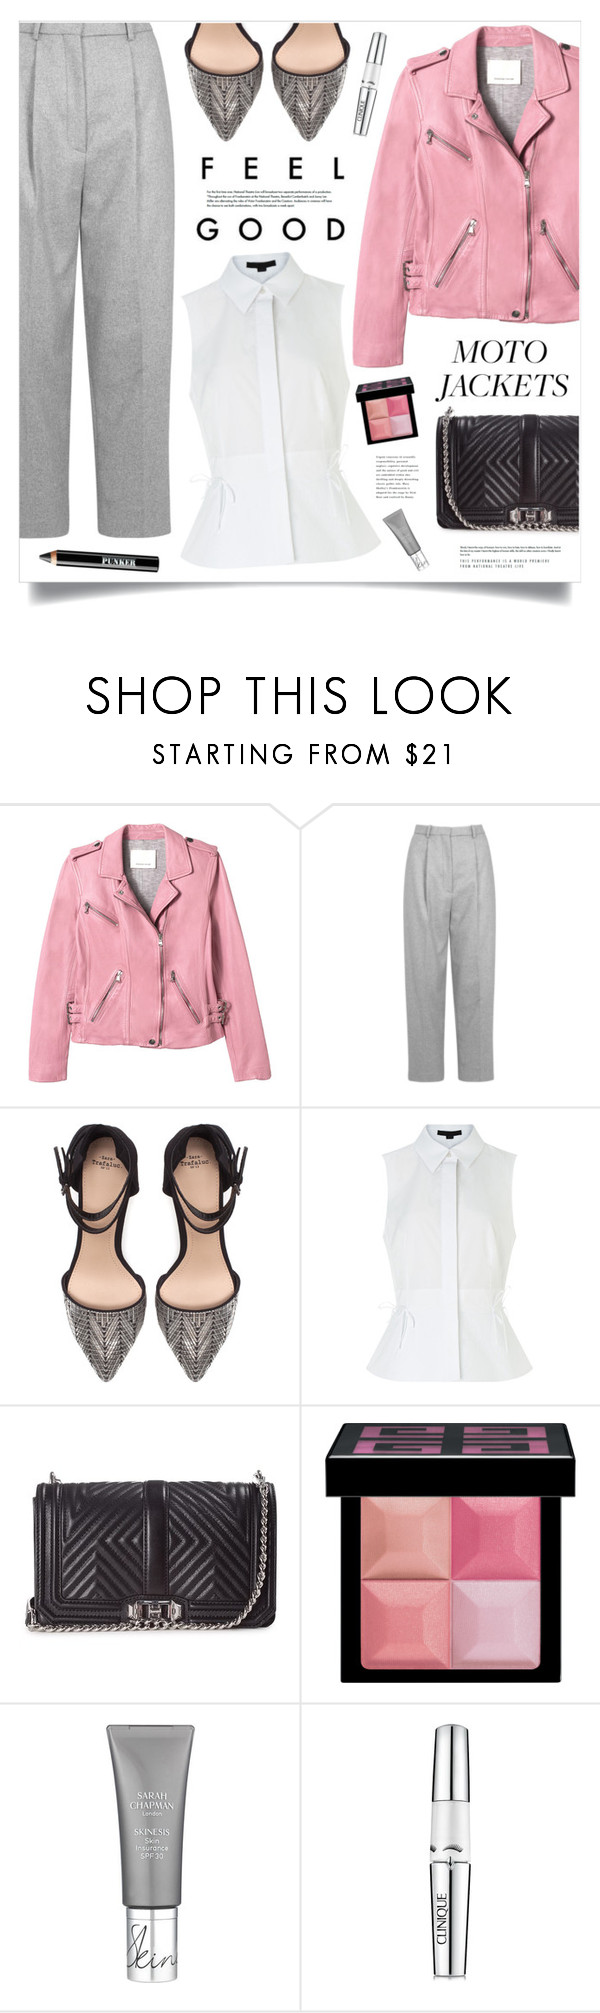 """""""Feel Good"""" by marina-volaric ❤ liked on Polyvore featuring Rebecca Taylor, Acne Studios, Zara, Alexander Wang, Rebecca Minkoff, Givenchy, Clinique, Ardency Inn and motojackets"""